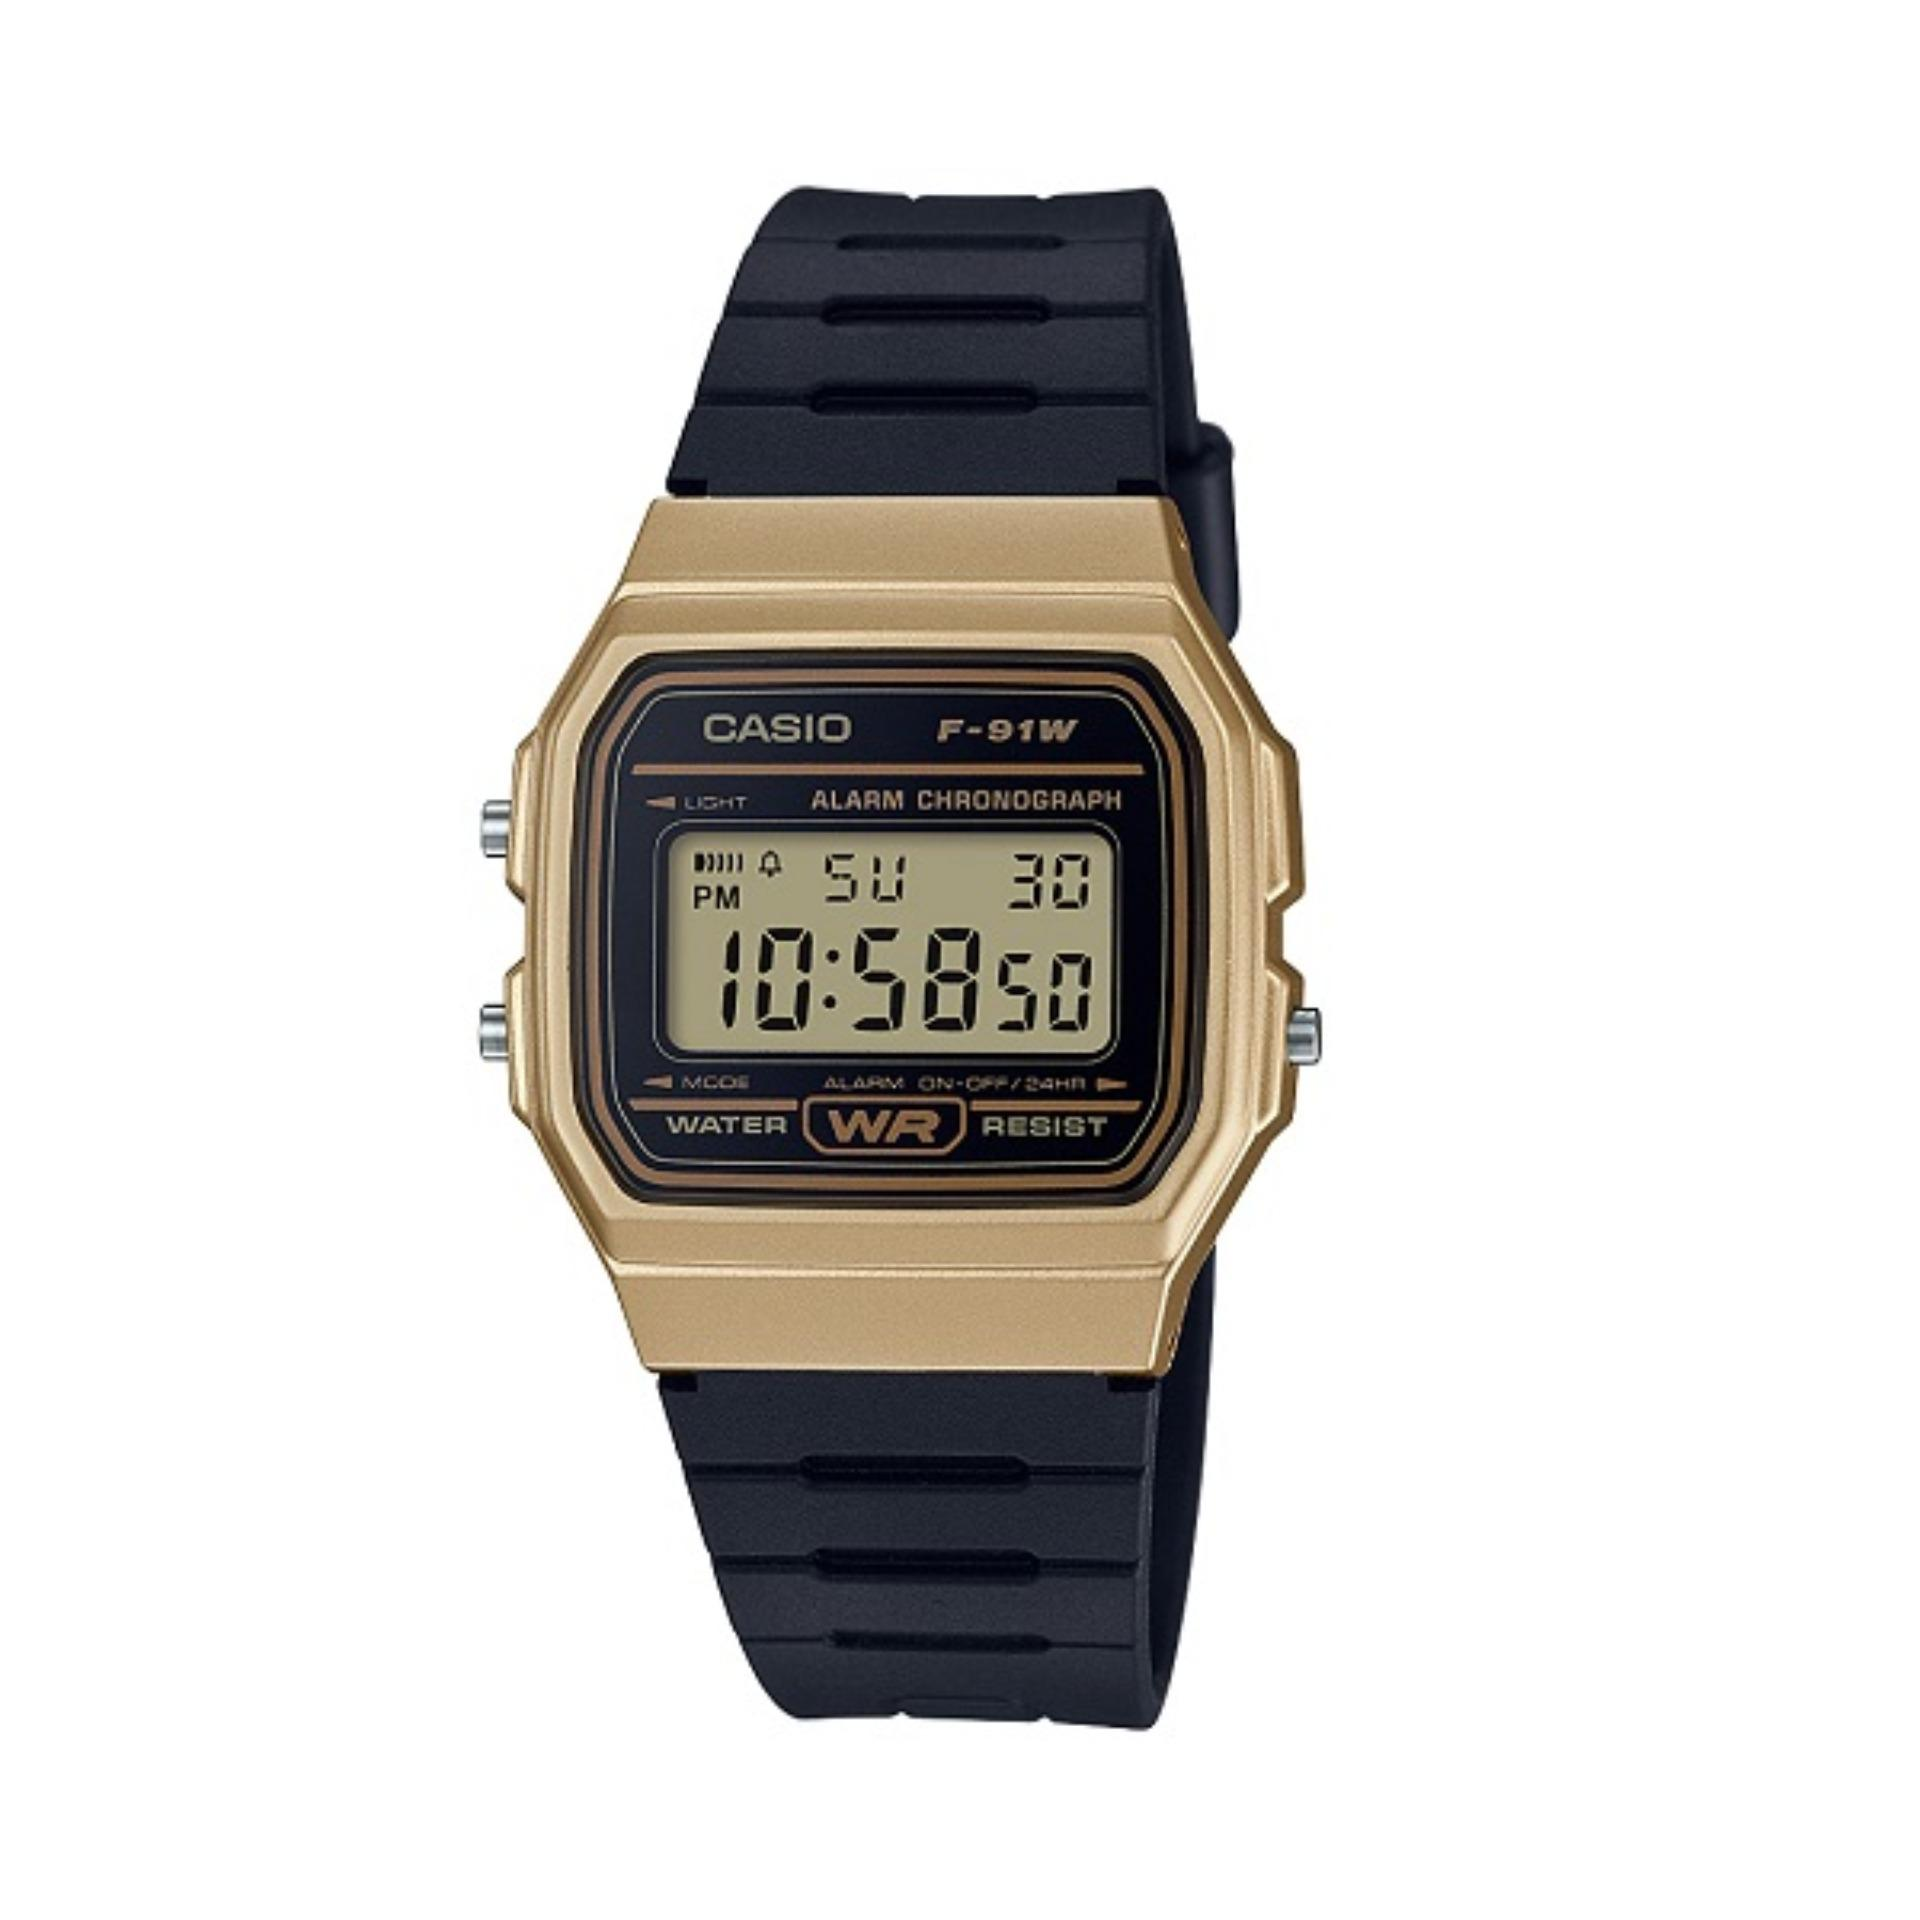 0a08f99818ee Casio Philippines  Casio price list - Casio Watches for Men   Women ...